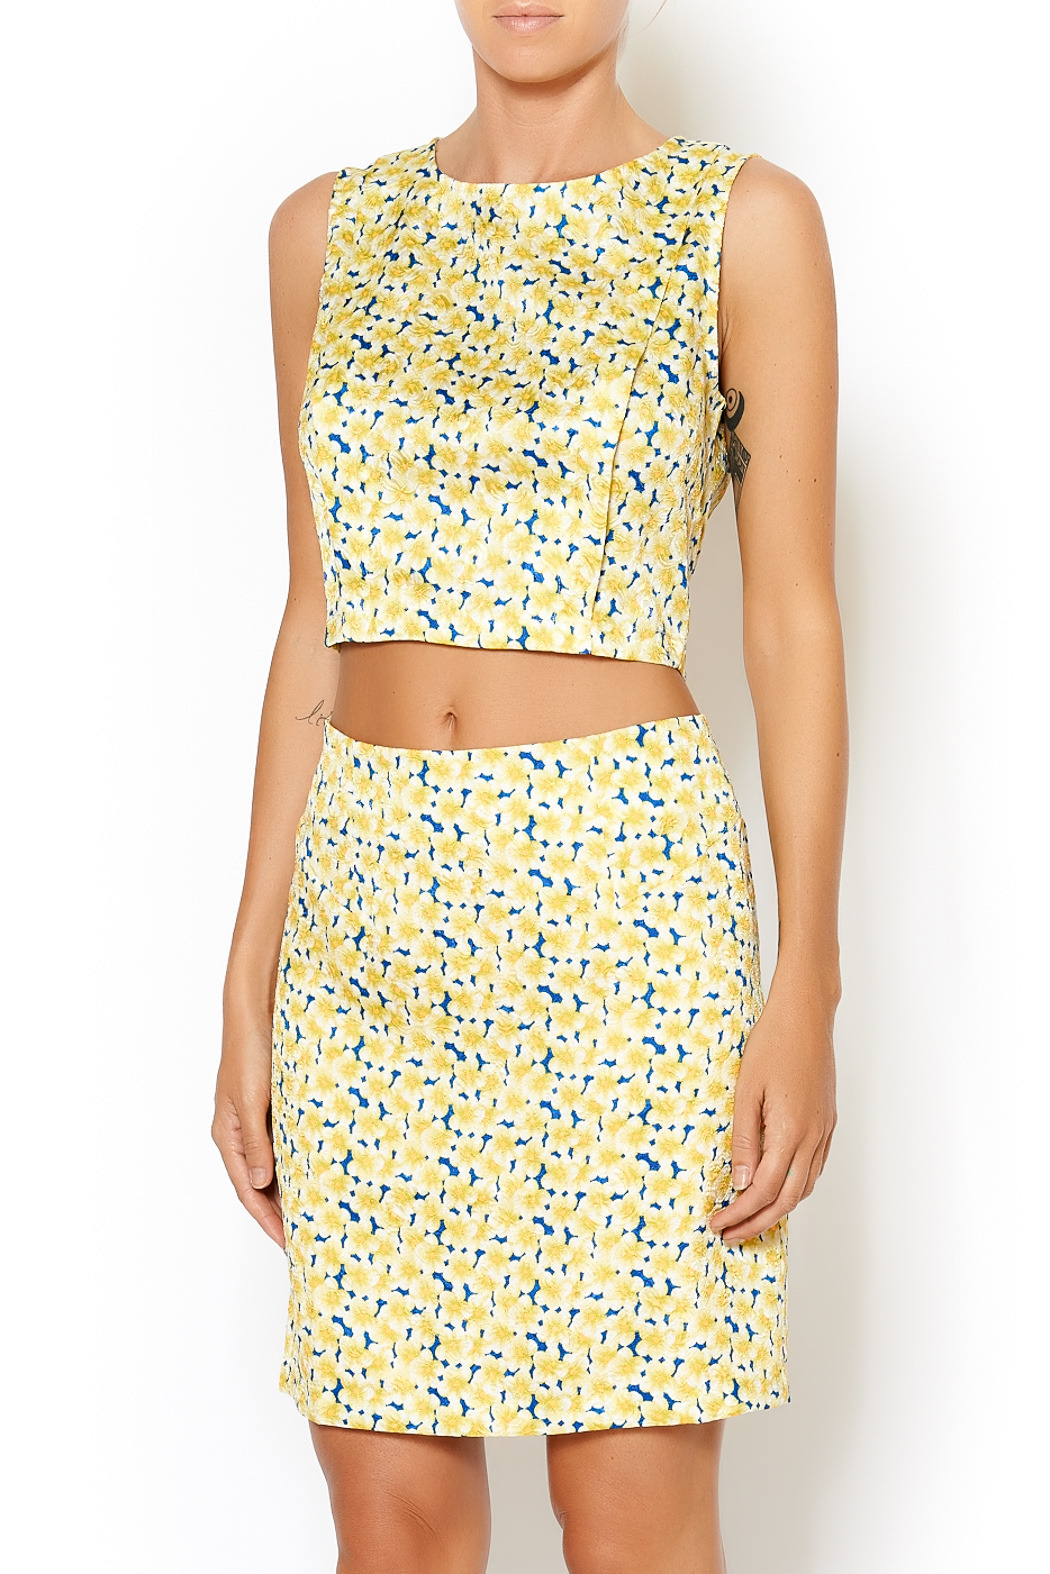 I. Madeline Yellow Daisy Crop Top - Front Cropped Image